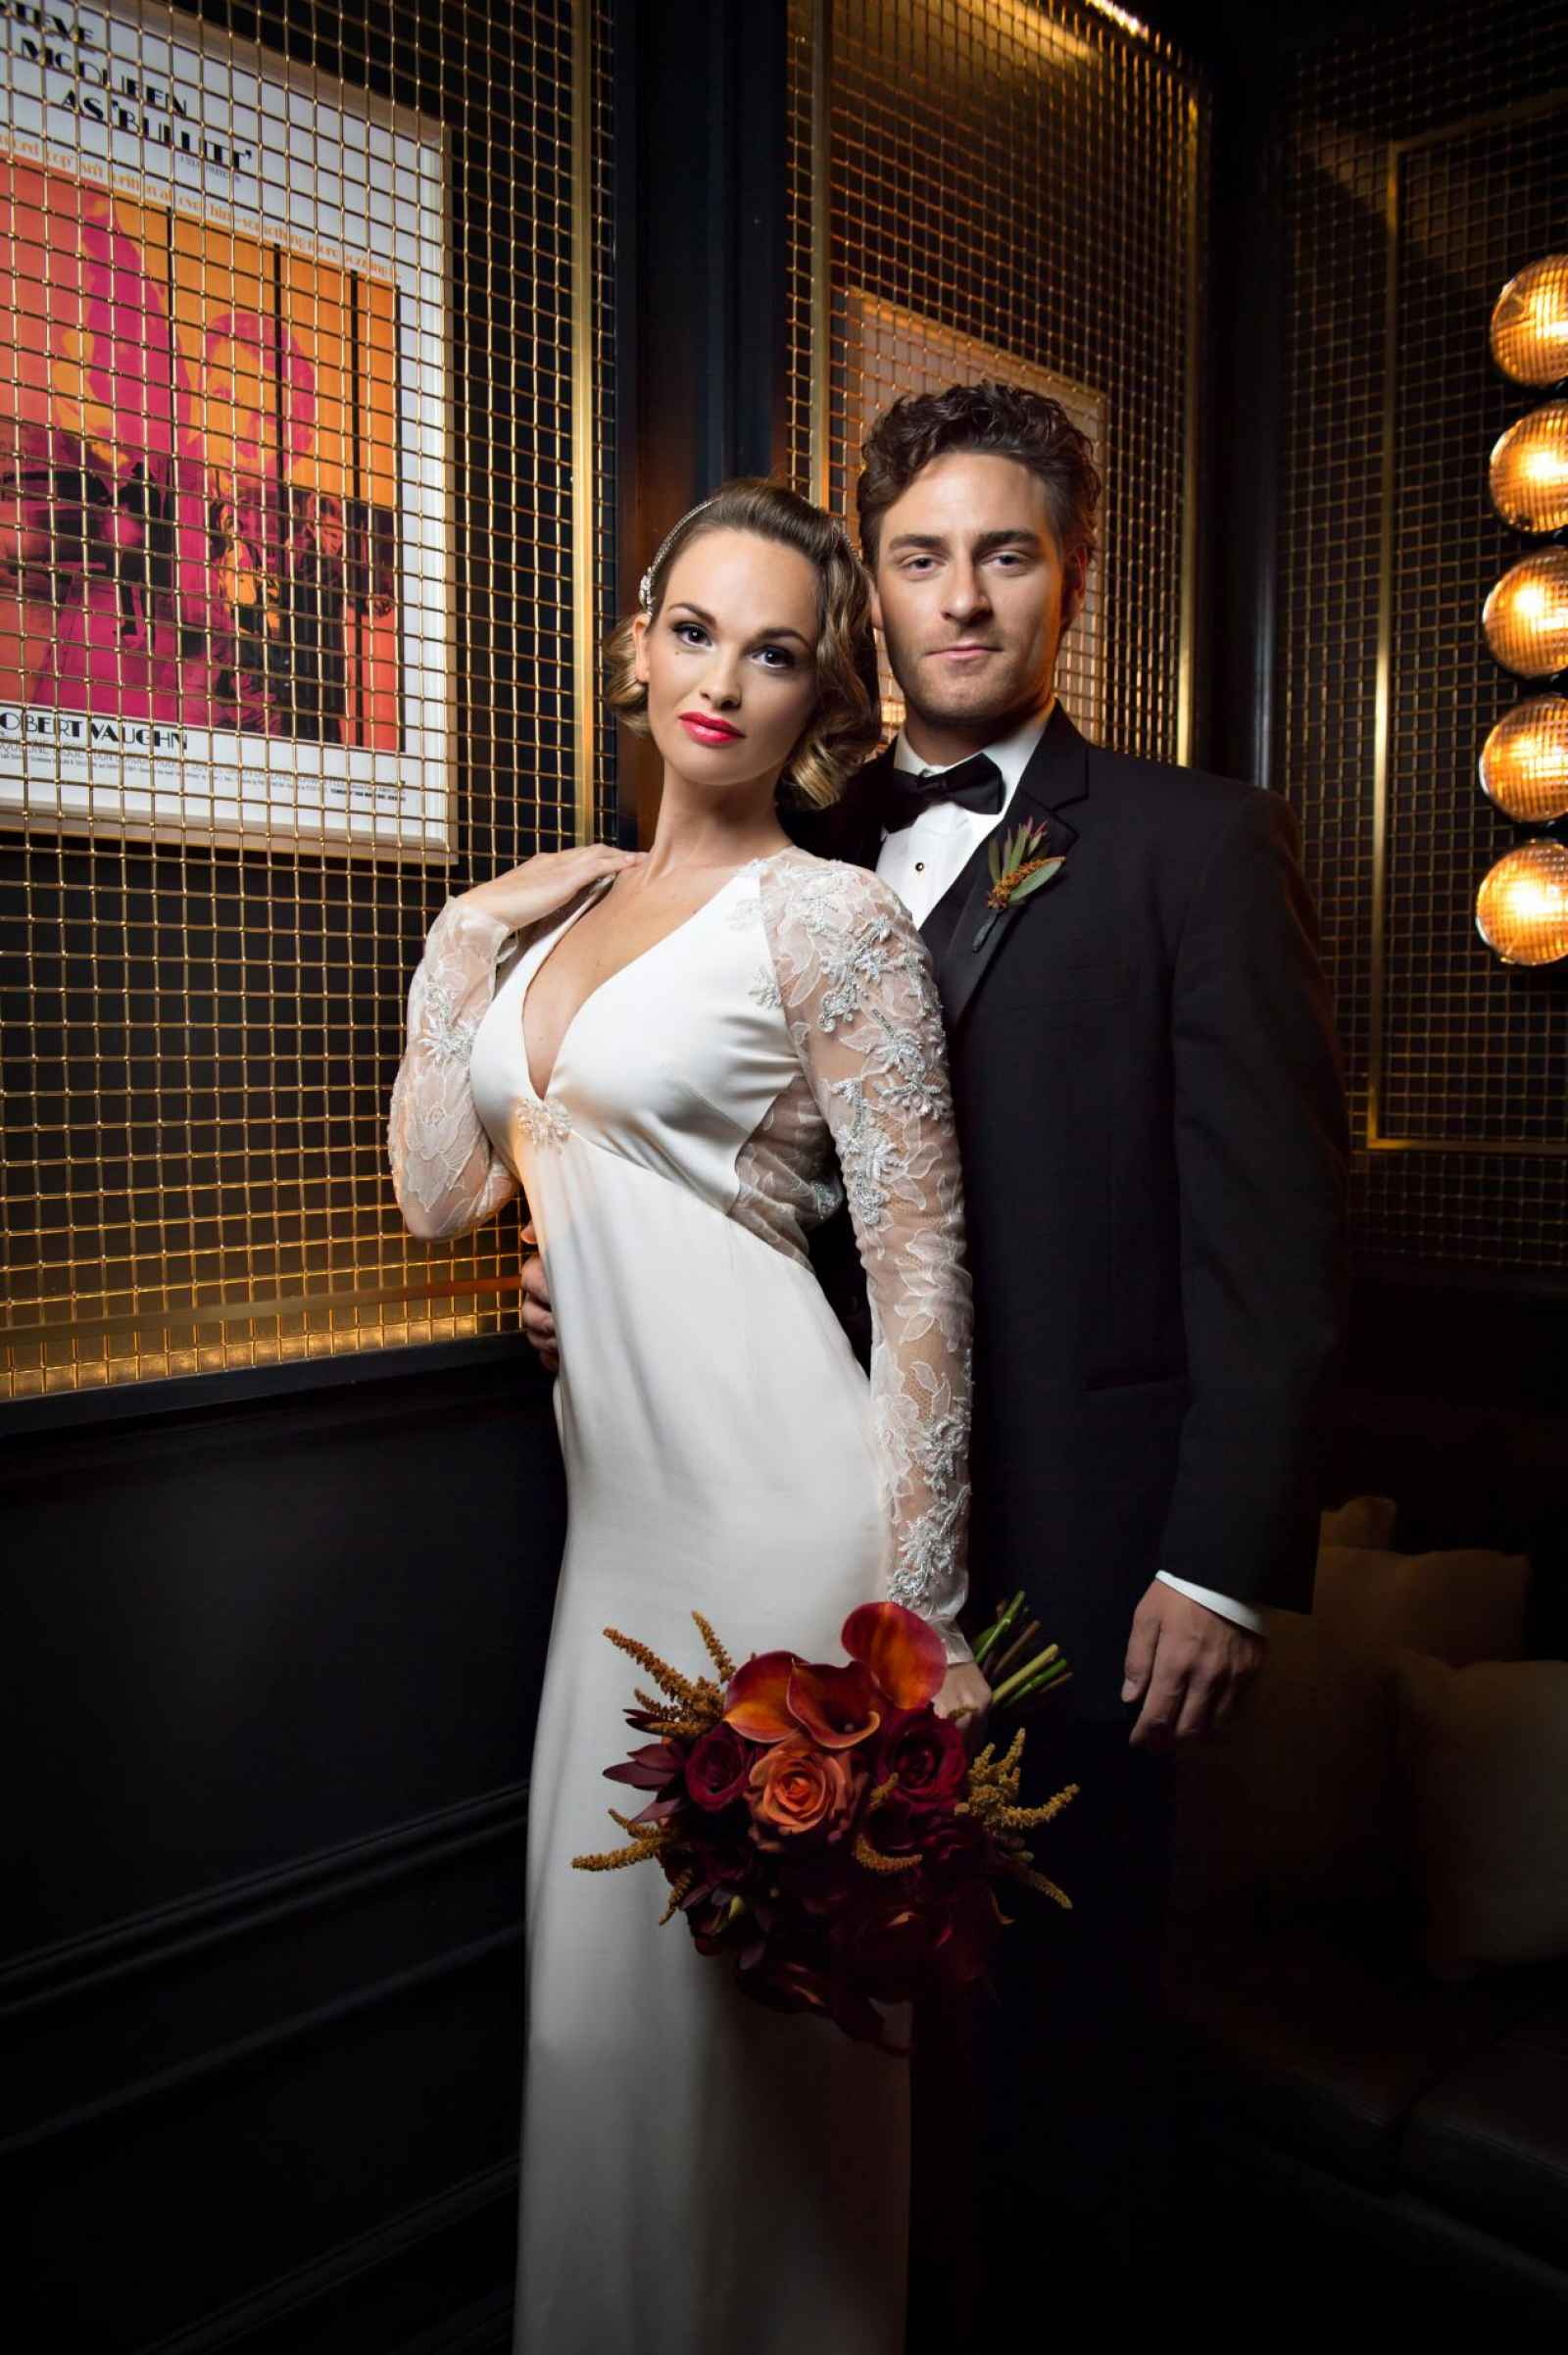 Autumn Inspired A Cover Shoot At Le Meridien Weddingday